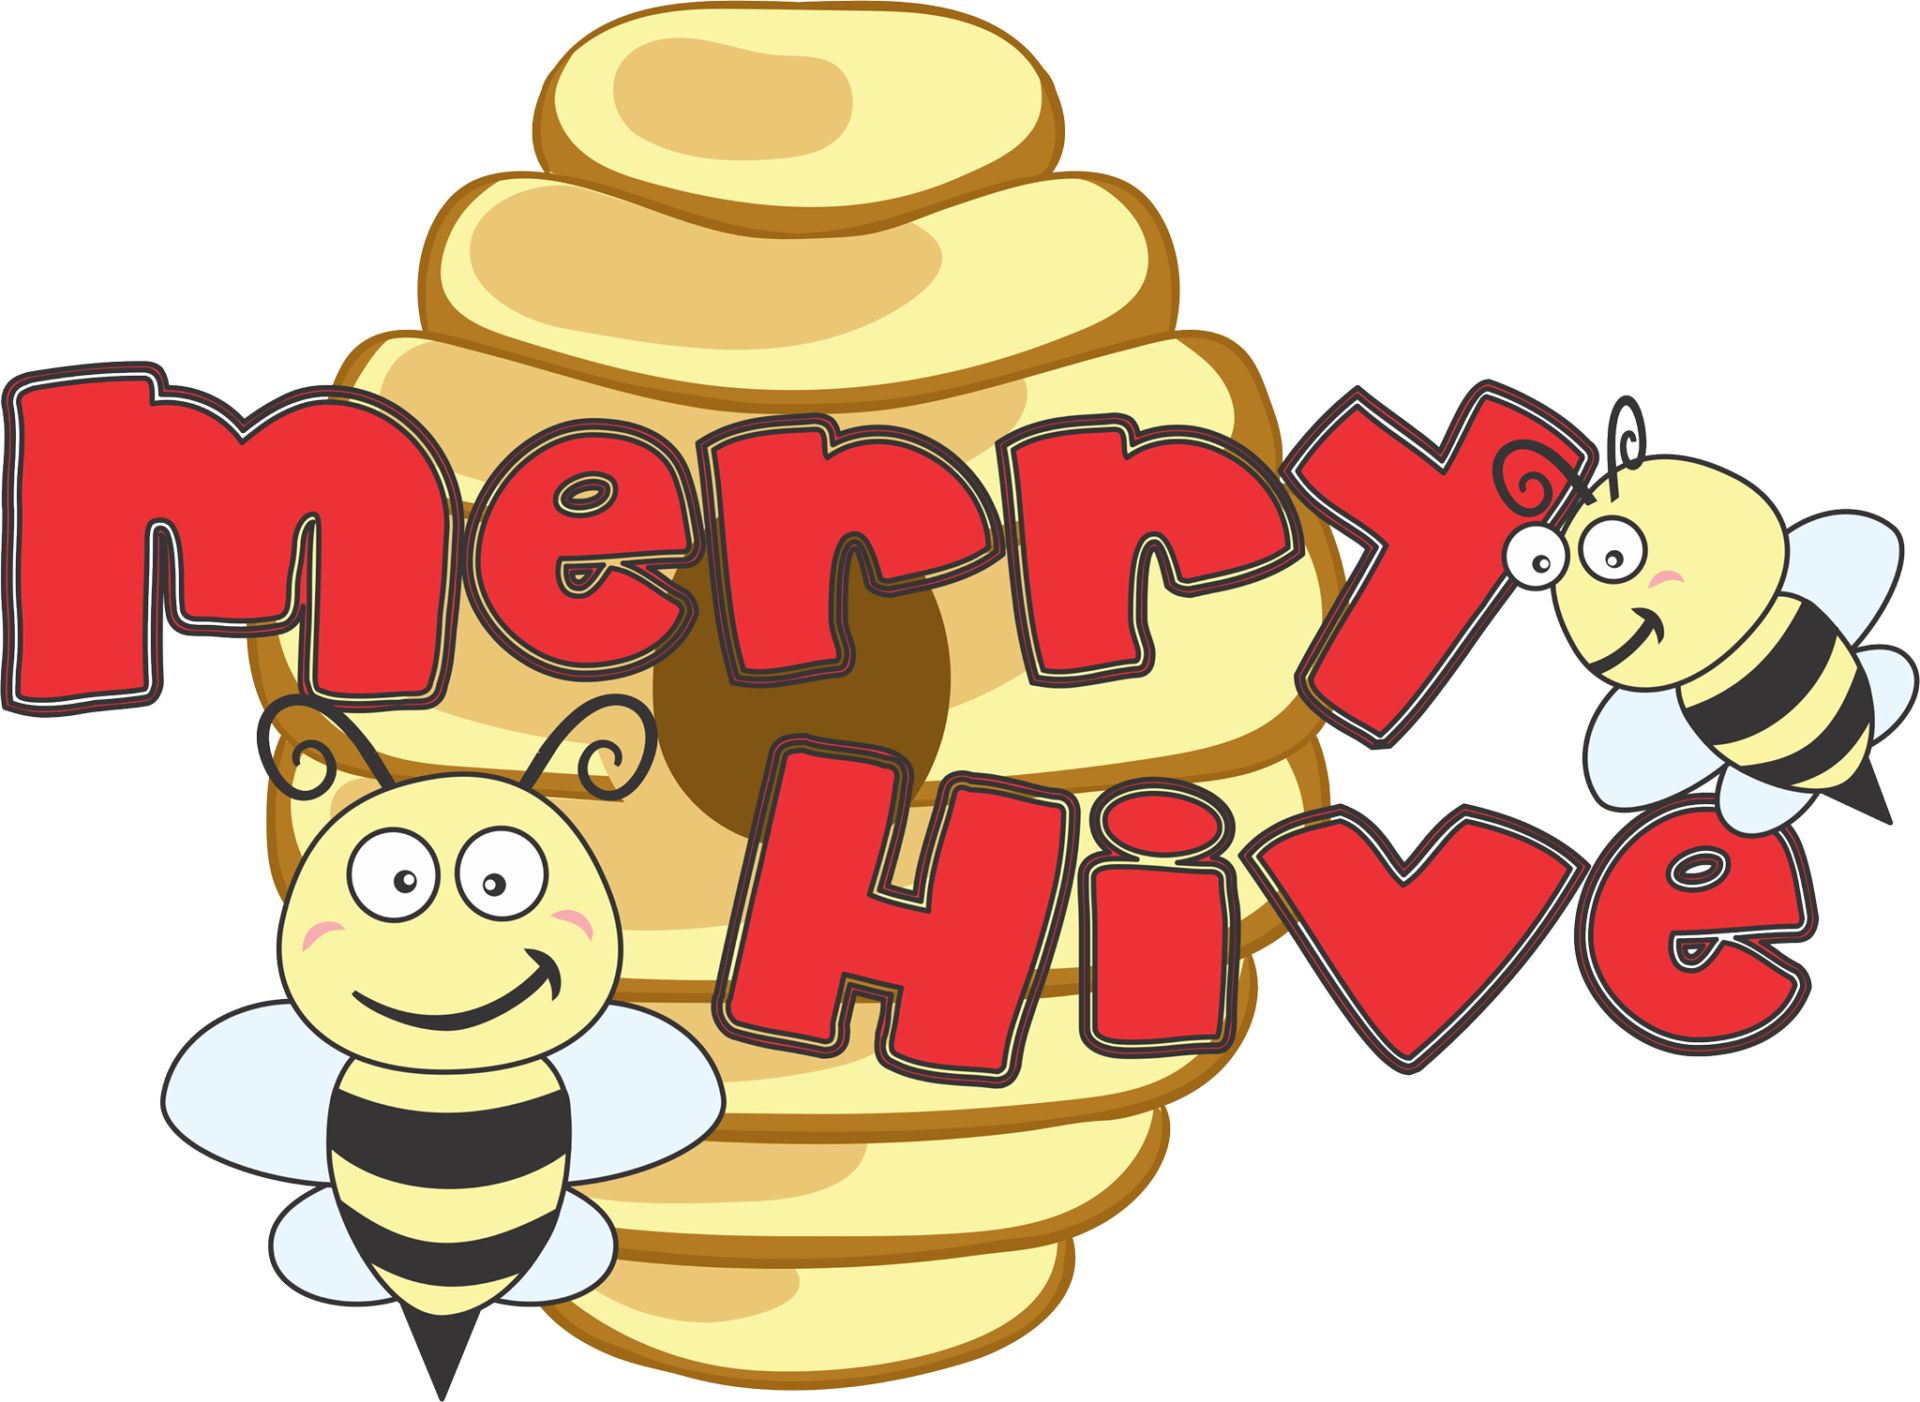 Merry hive russian daycare. Storytime clipart preschool naptime